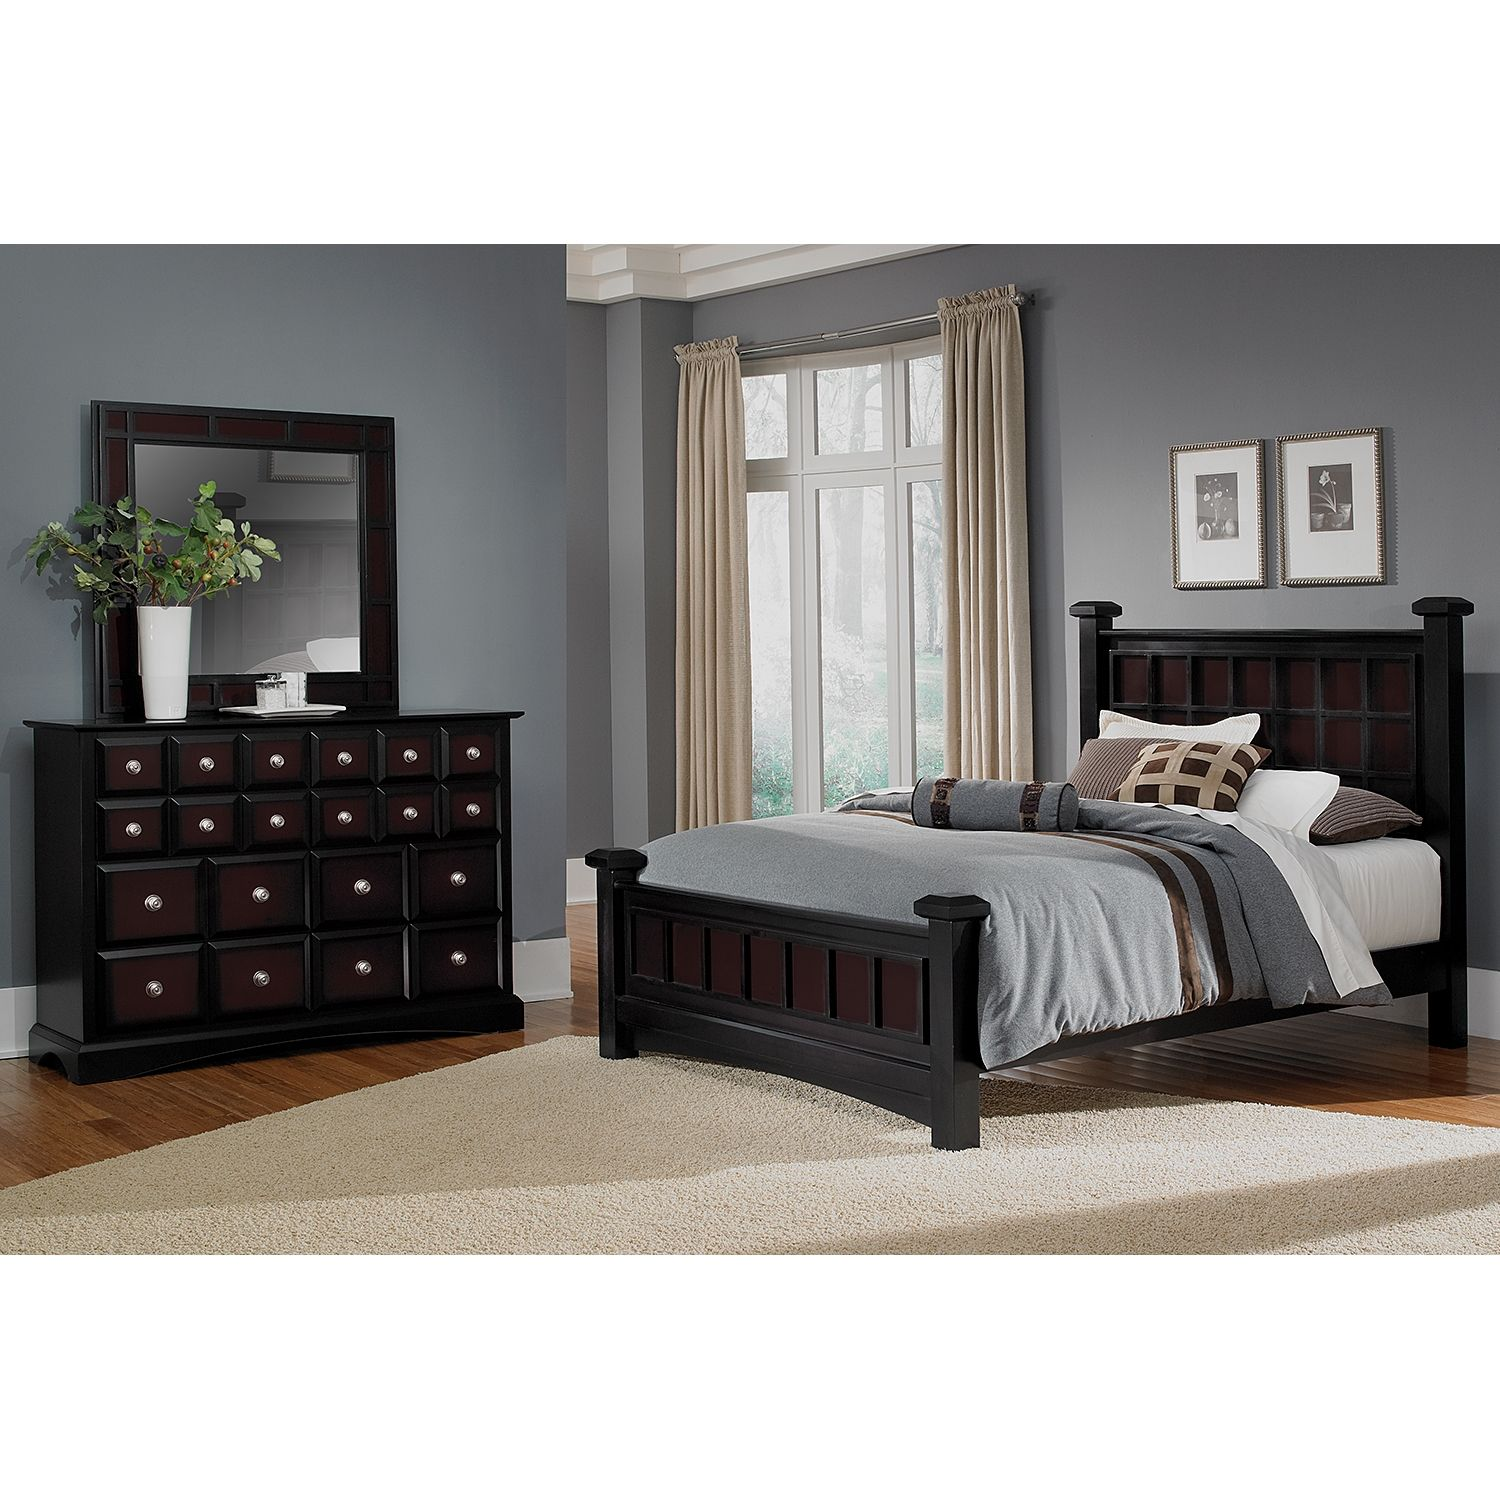 Like The Black For Zachu0027s Room    Neo Classic Black II Kids Furniture  Collection   Value City Furniture Twin Bed $199.99 | Home Sweet Home |  Pinterest ...